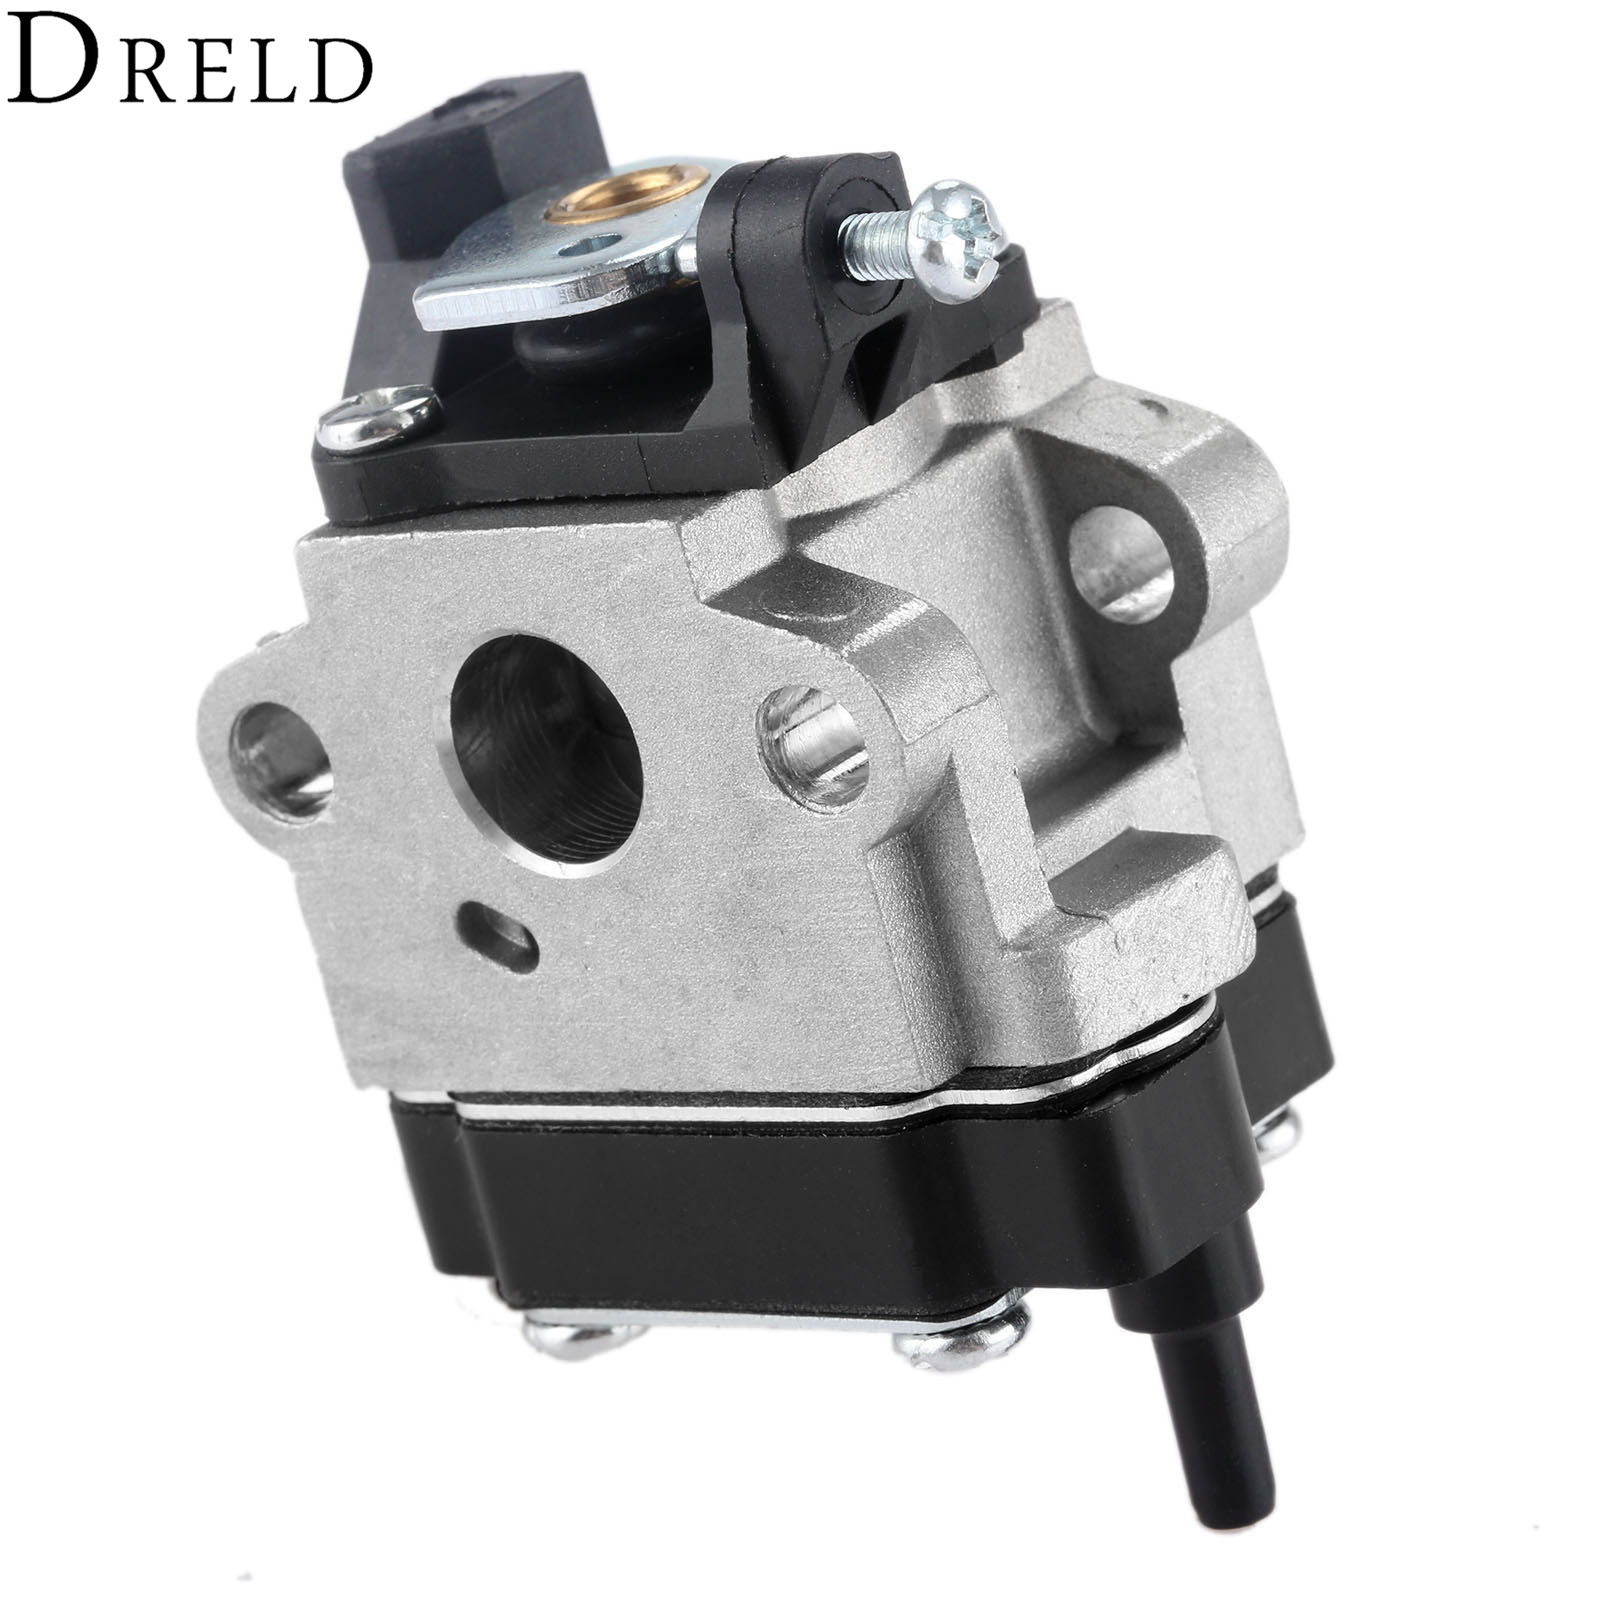 DRELD Carburetor Carb for GENUINE Walbro WYC-7 Toro 308480001 F-Series Grass Trimmer WYC-7-1 WYC7 Trimmers Brush Cutters Engine dreld carburetor carb for 1e40f 5 tb43 brush cutter chainsaw spare parts for grass trimmers and cutters garden tools parts